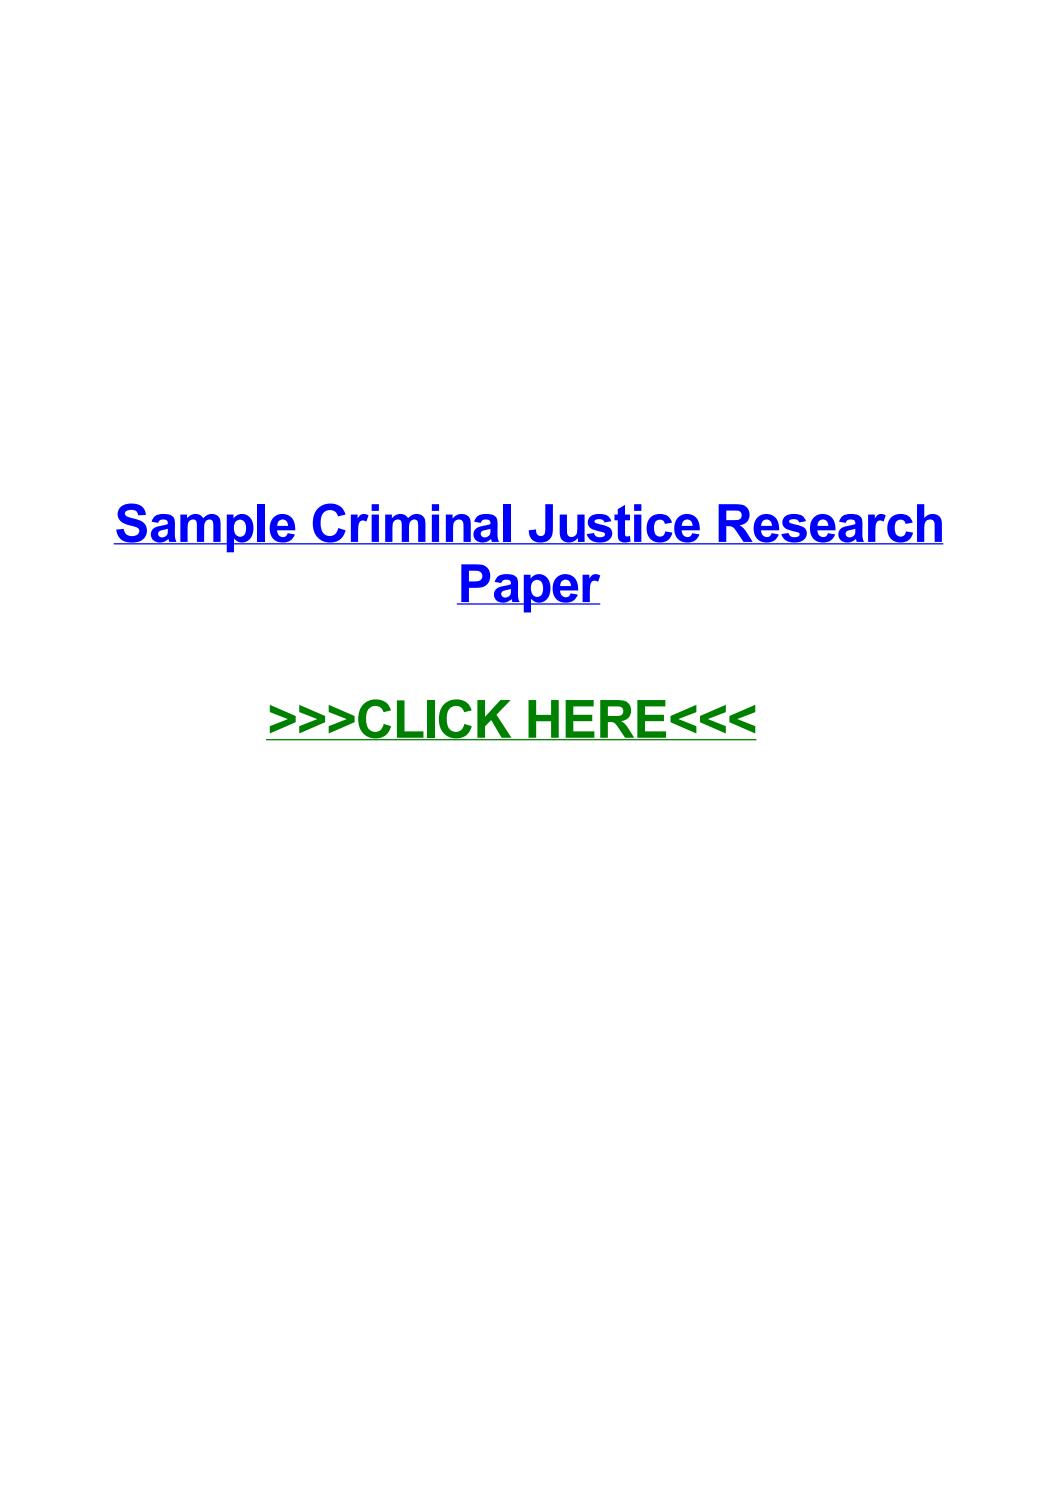 009 Criminal Justice Researchs Free Page 1 Unforgettable Research Papers Full